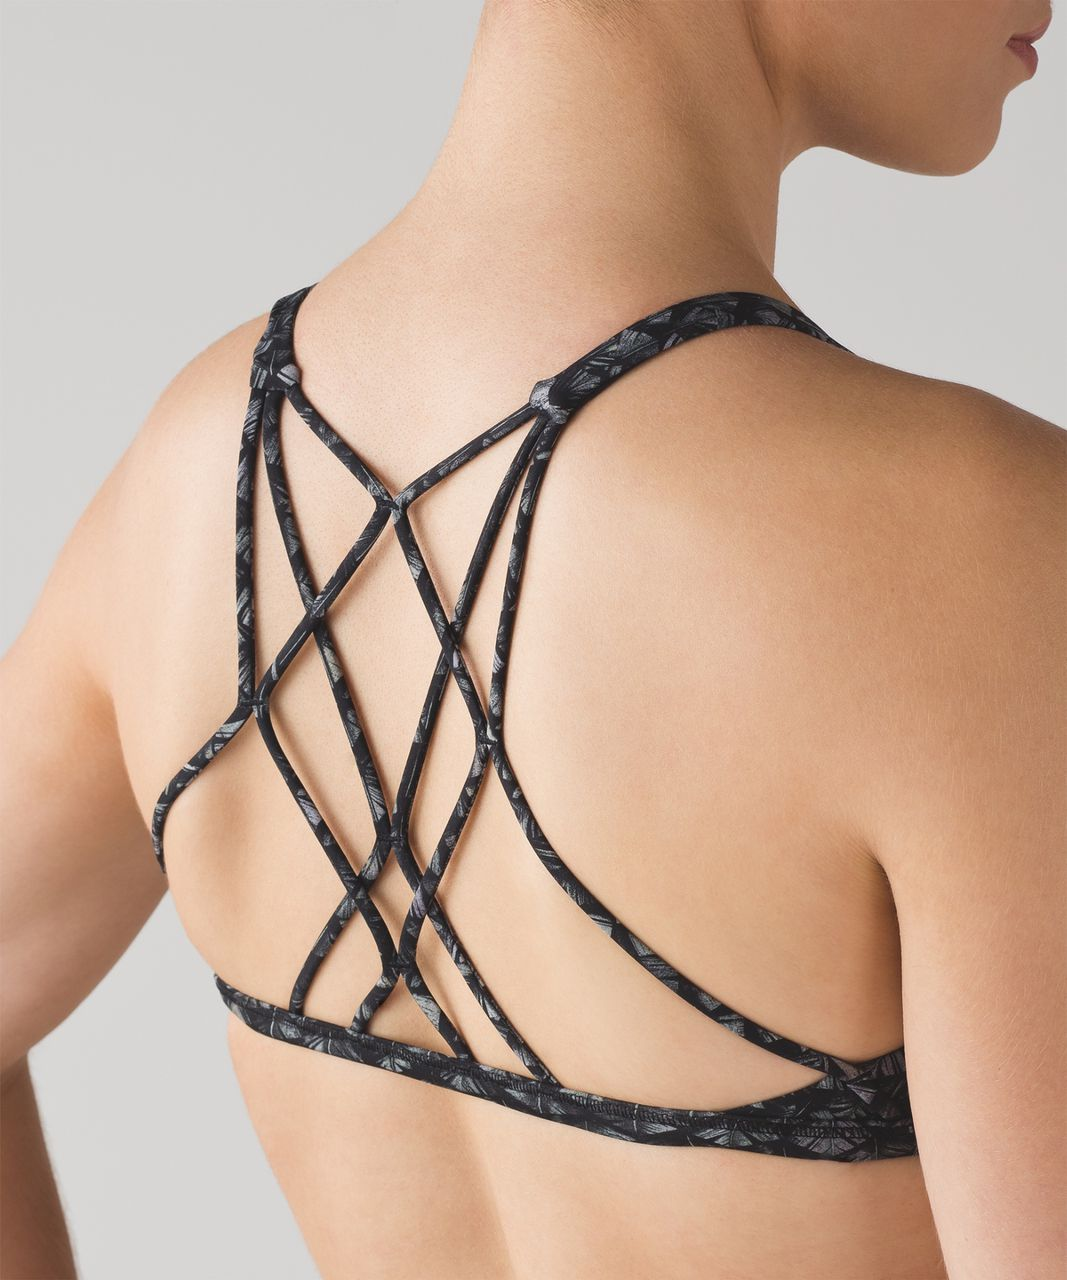 Lululemon Free To Be Zen Bra - Iridescent Multi Black